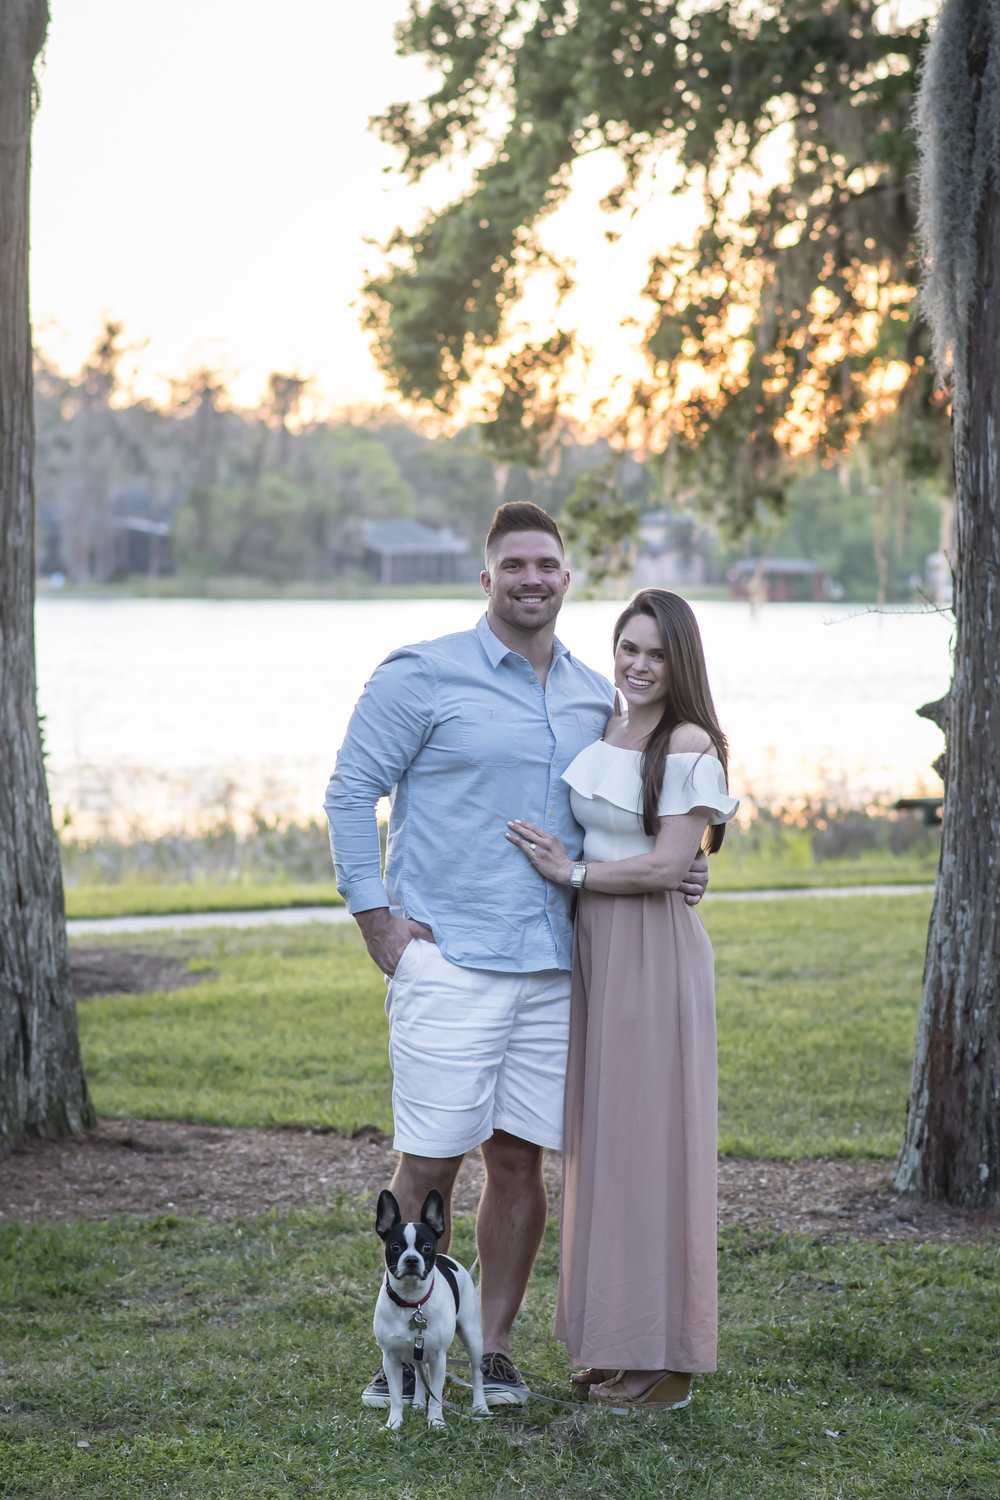 cypress-grove-park-engagement-session-orlando-photographer-yanitza-ninett-26.jpg